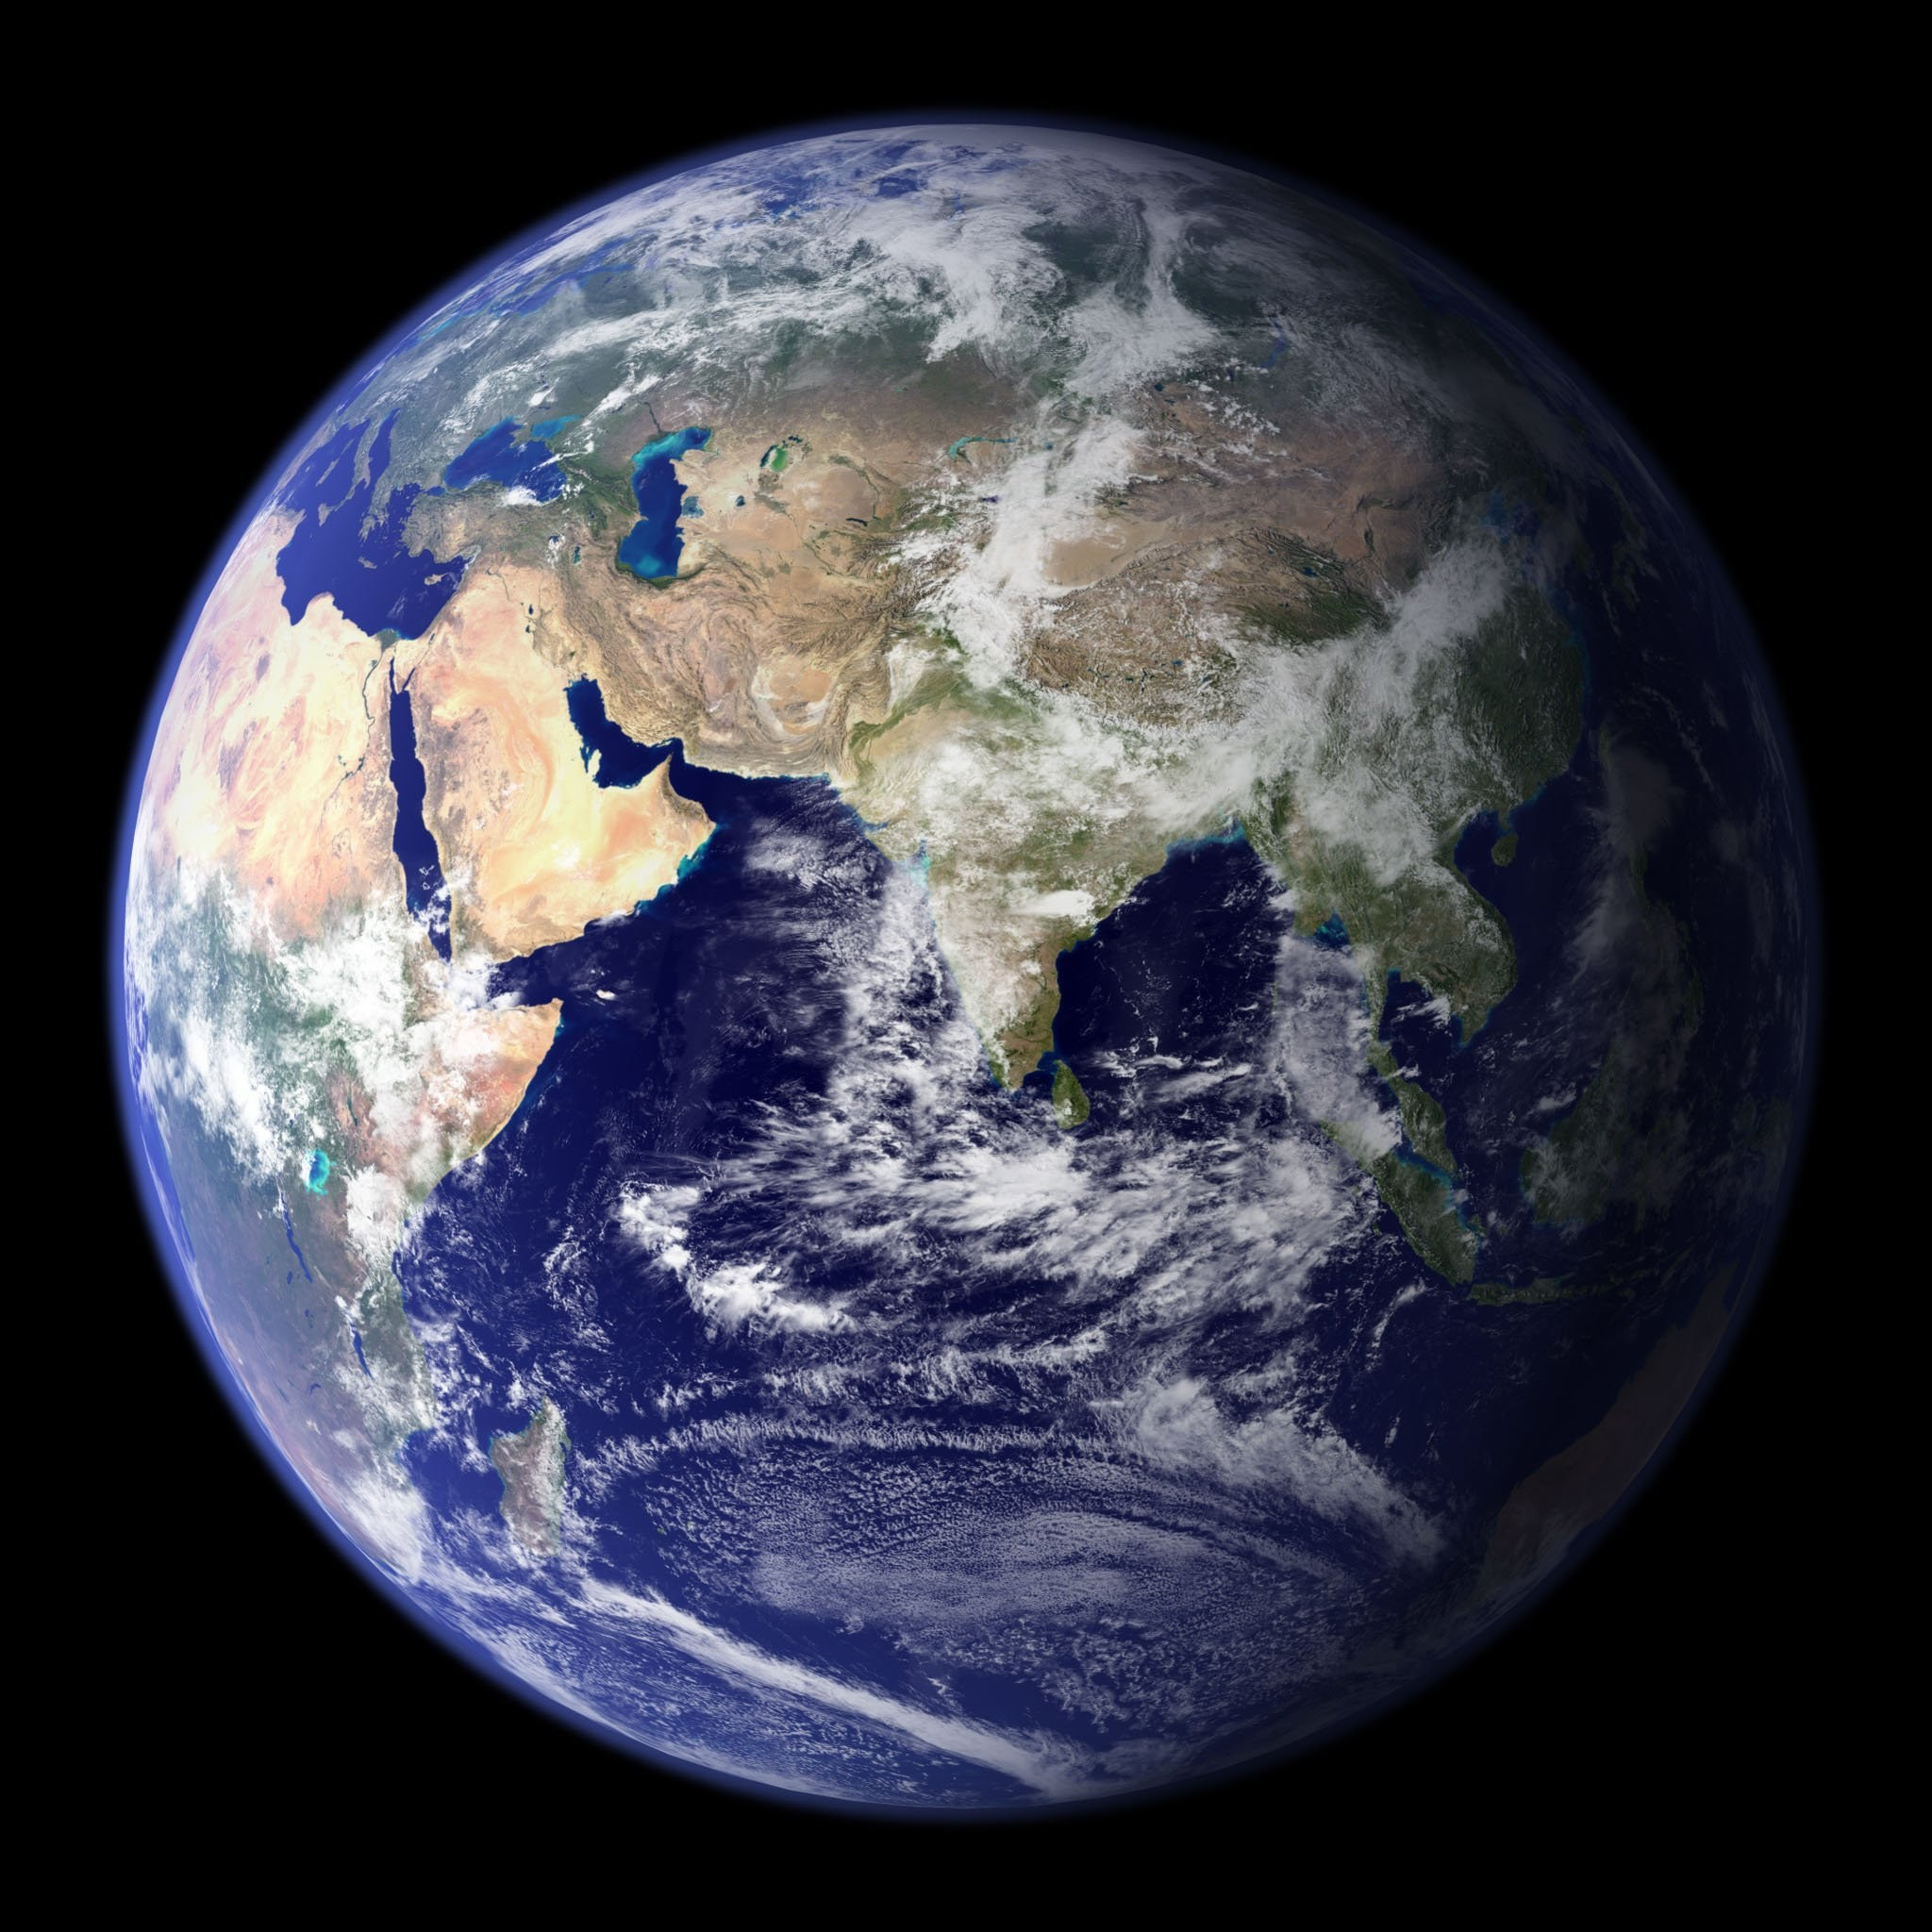 earth blue planet globe planet space universe all